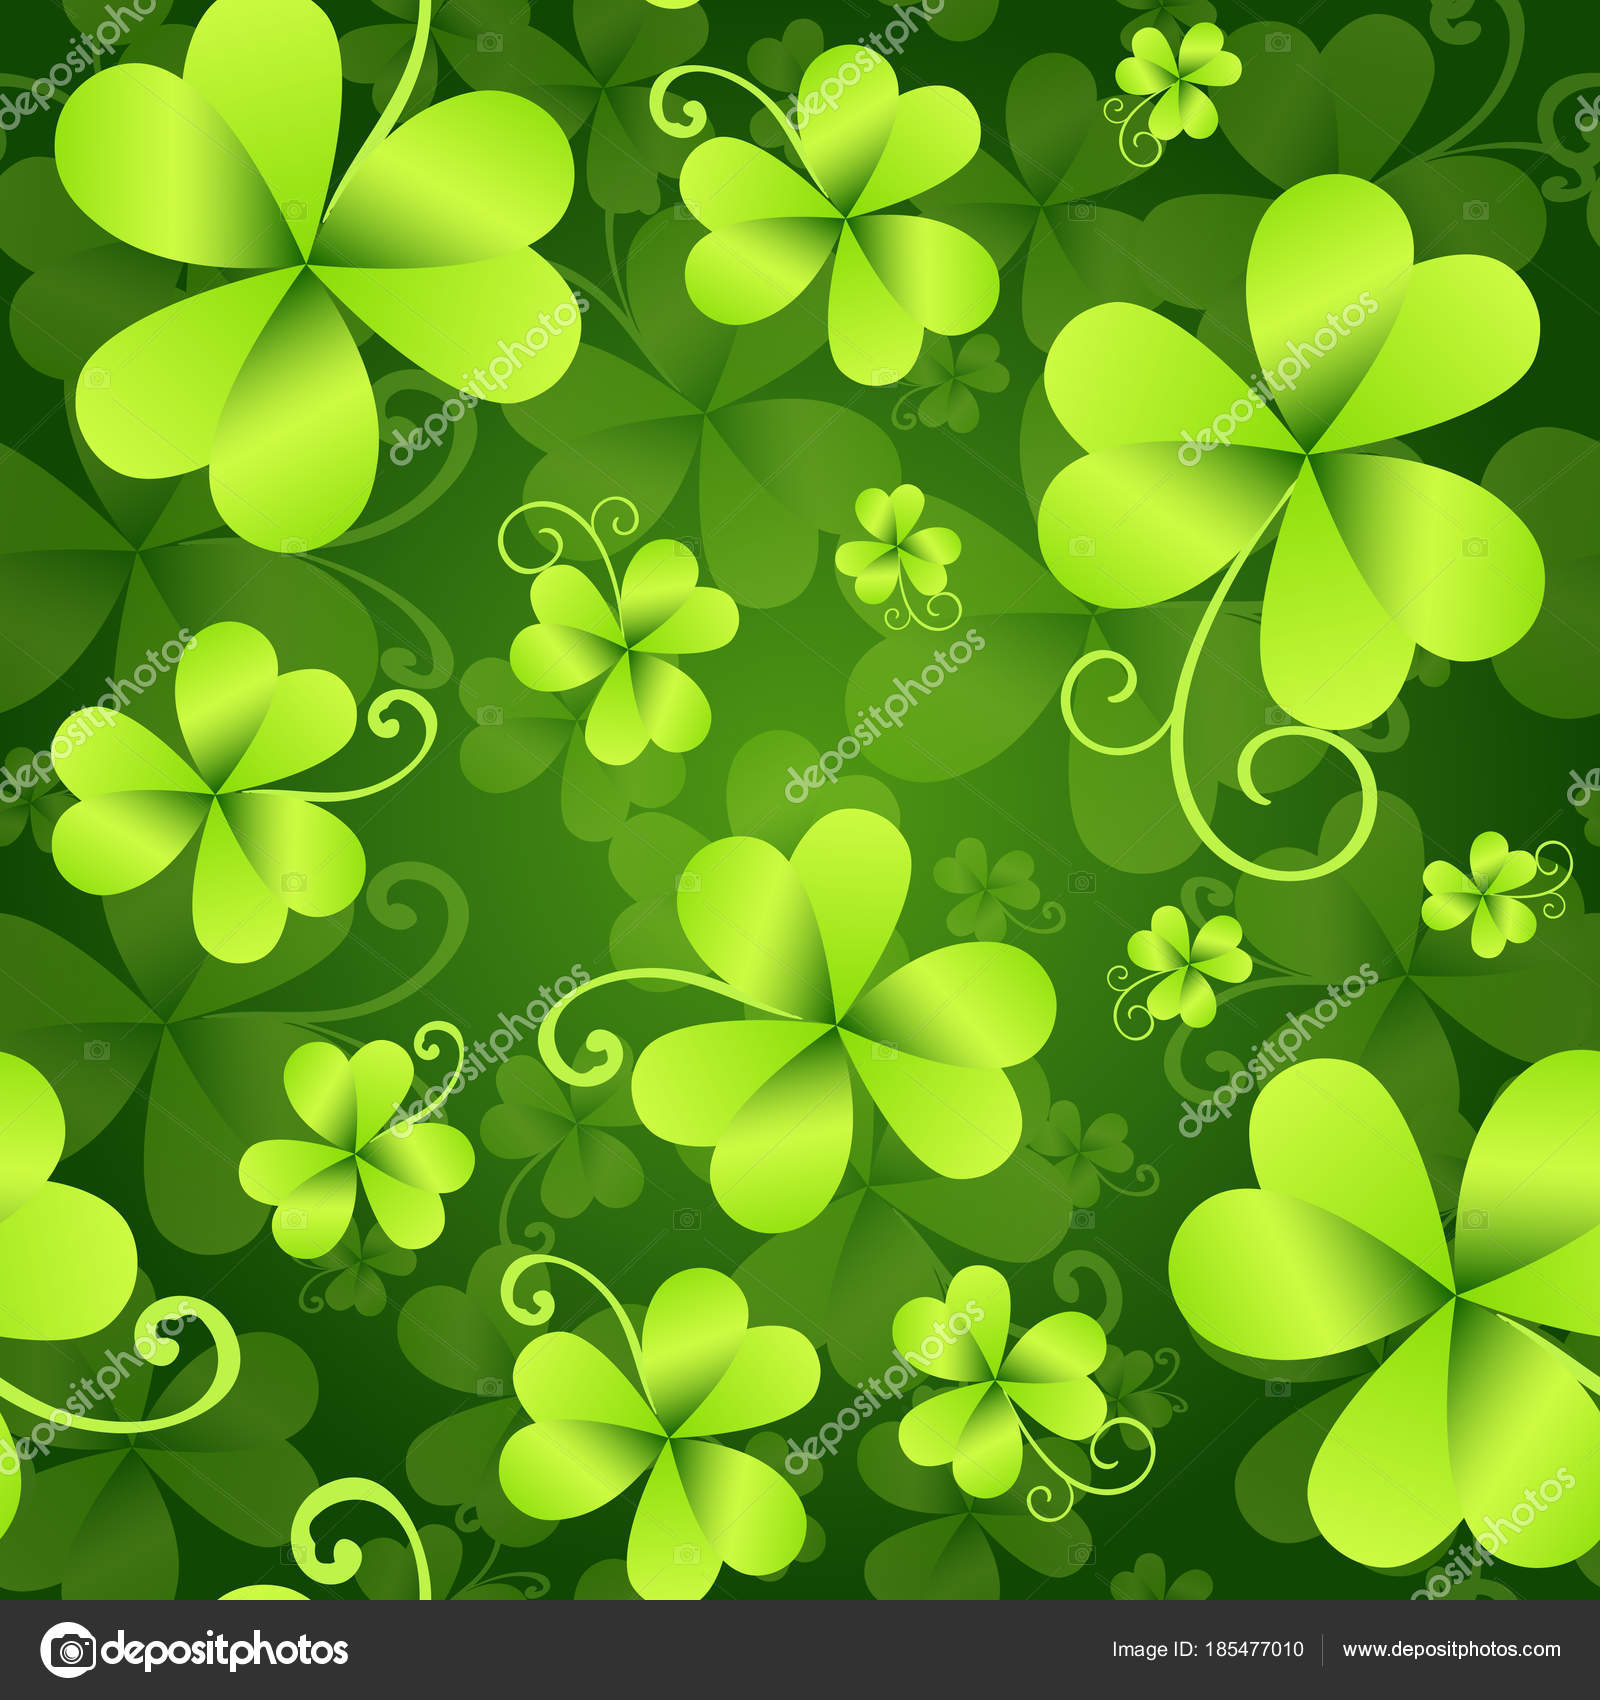 Clover leaves seamless pattern st patricks day green background clover leaves seamless pattern st patricks day green background shamrock wallpaper vector illustration vector by mast3r voltagebd Image collections